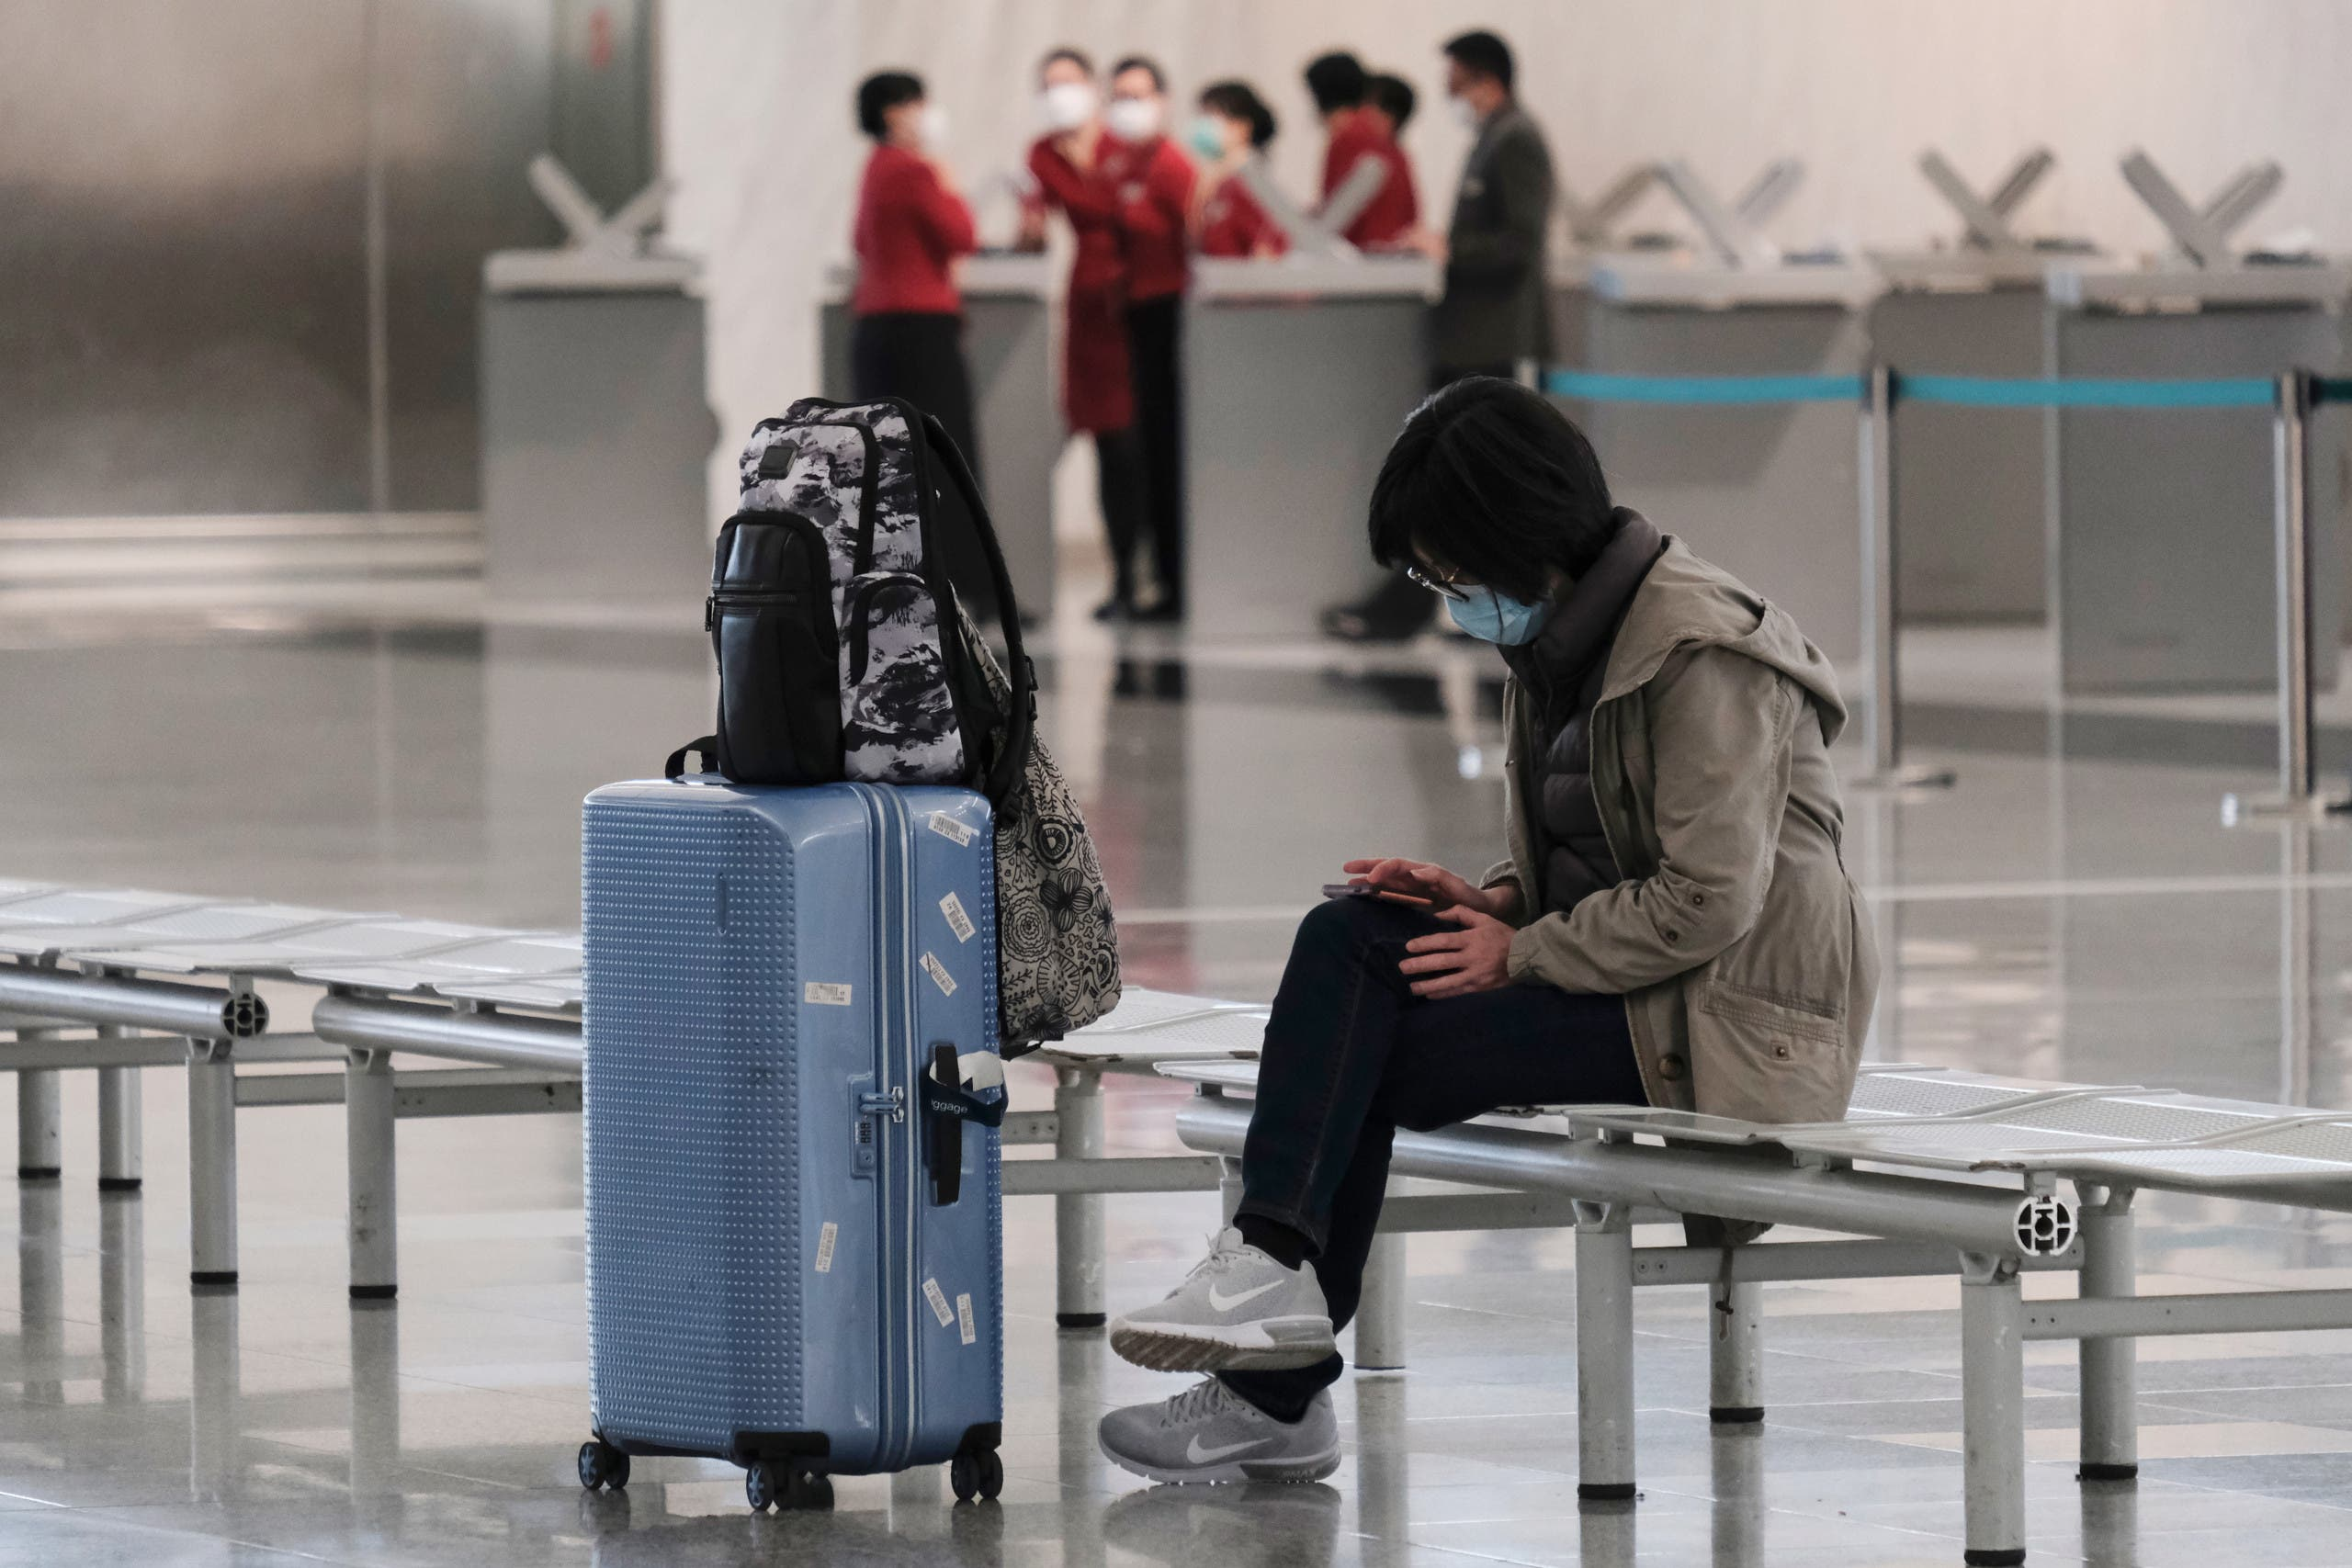 A passenger wears a protective face mask at the airport, following the outbreak of the new coronavirus, in Hong Kong, China, March 5, 2020. (Reuters)